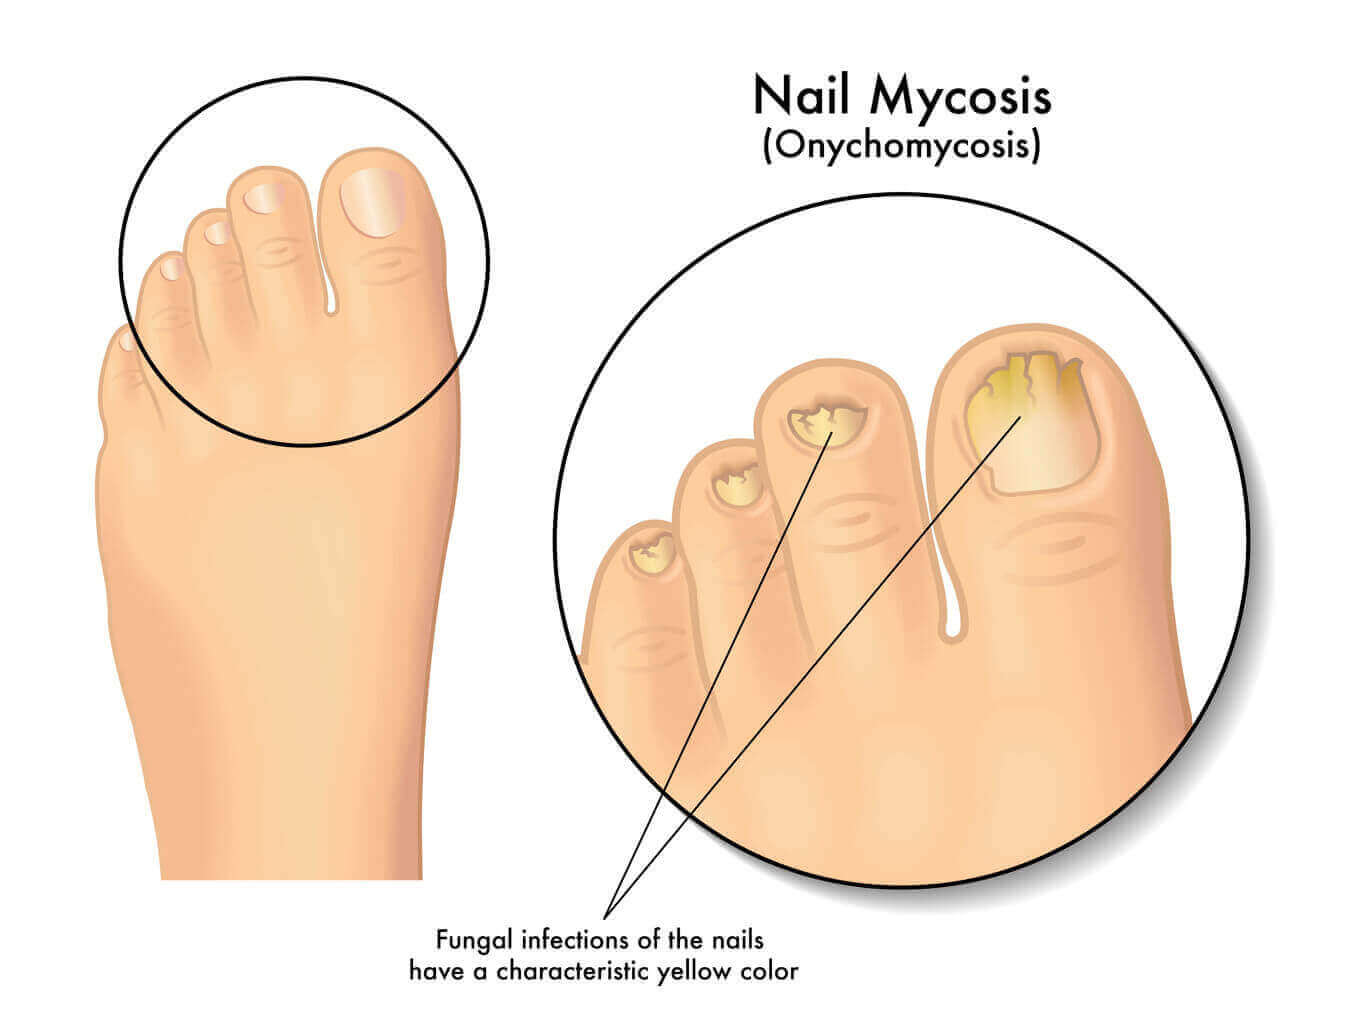 hight resolution of when you cannot wear socks and shoes let the foot breathe and always dry the skin well after washing it